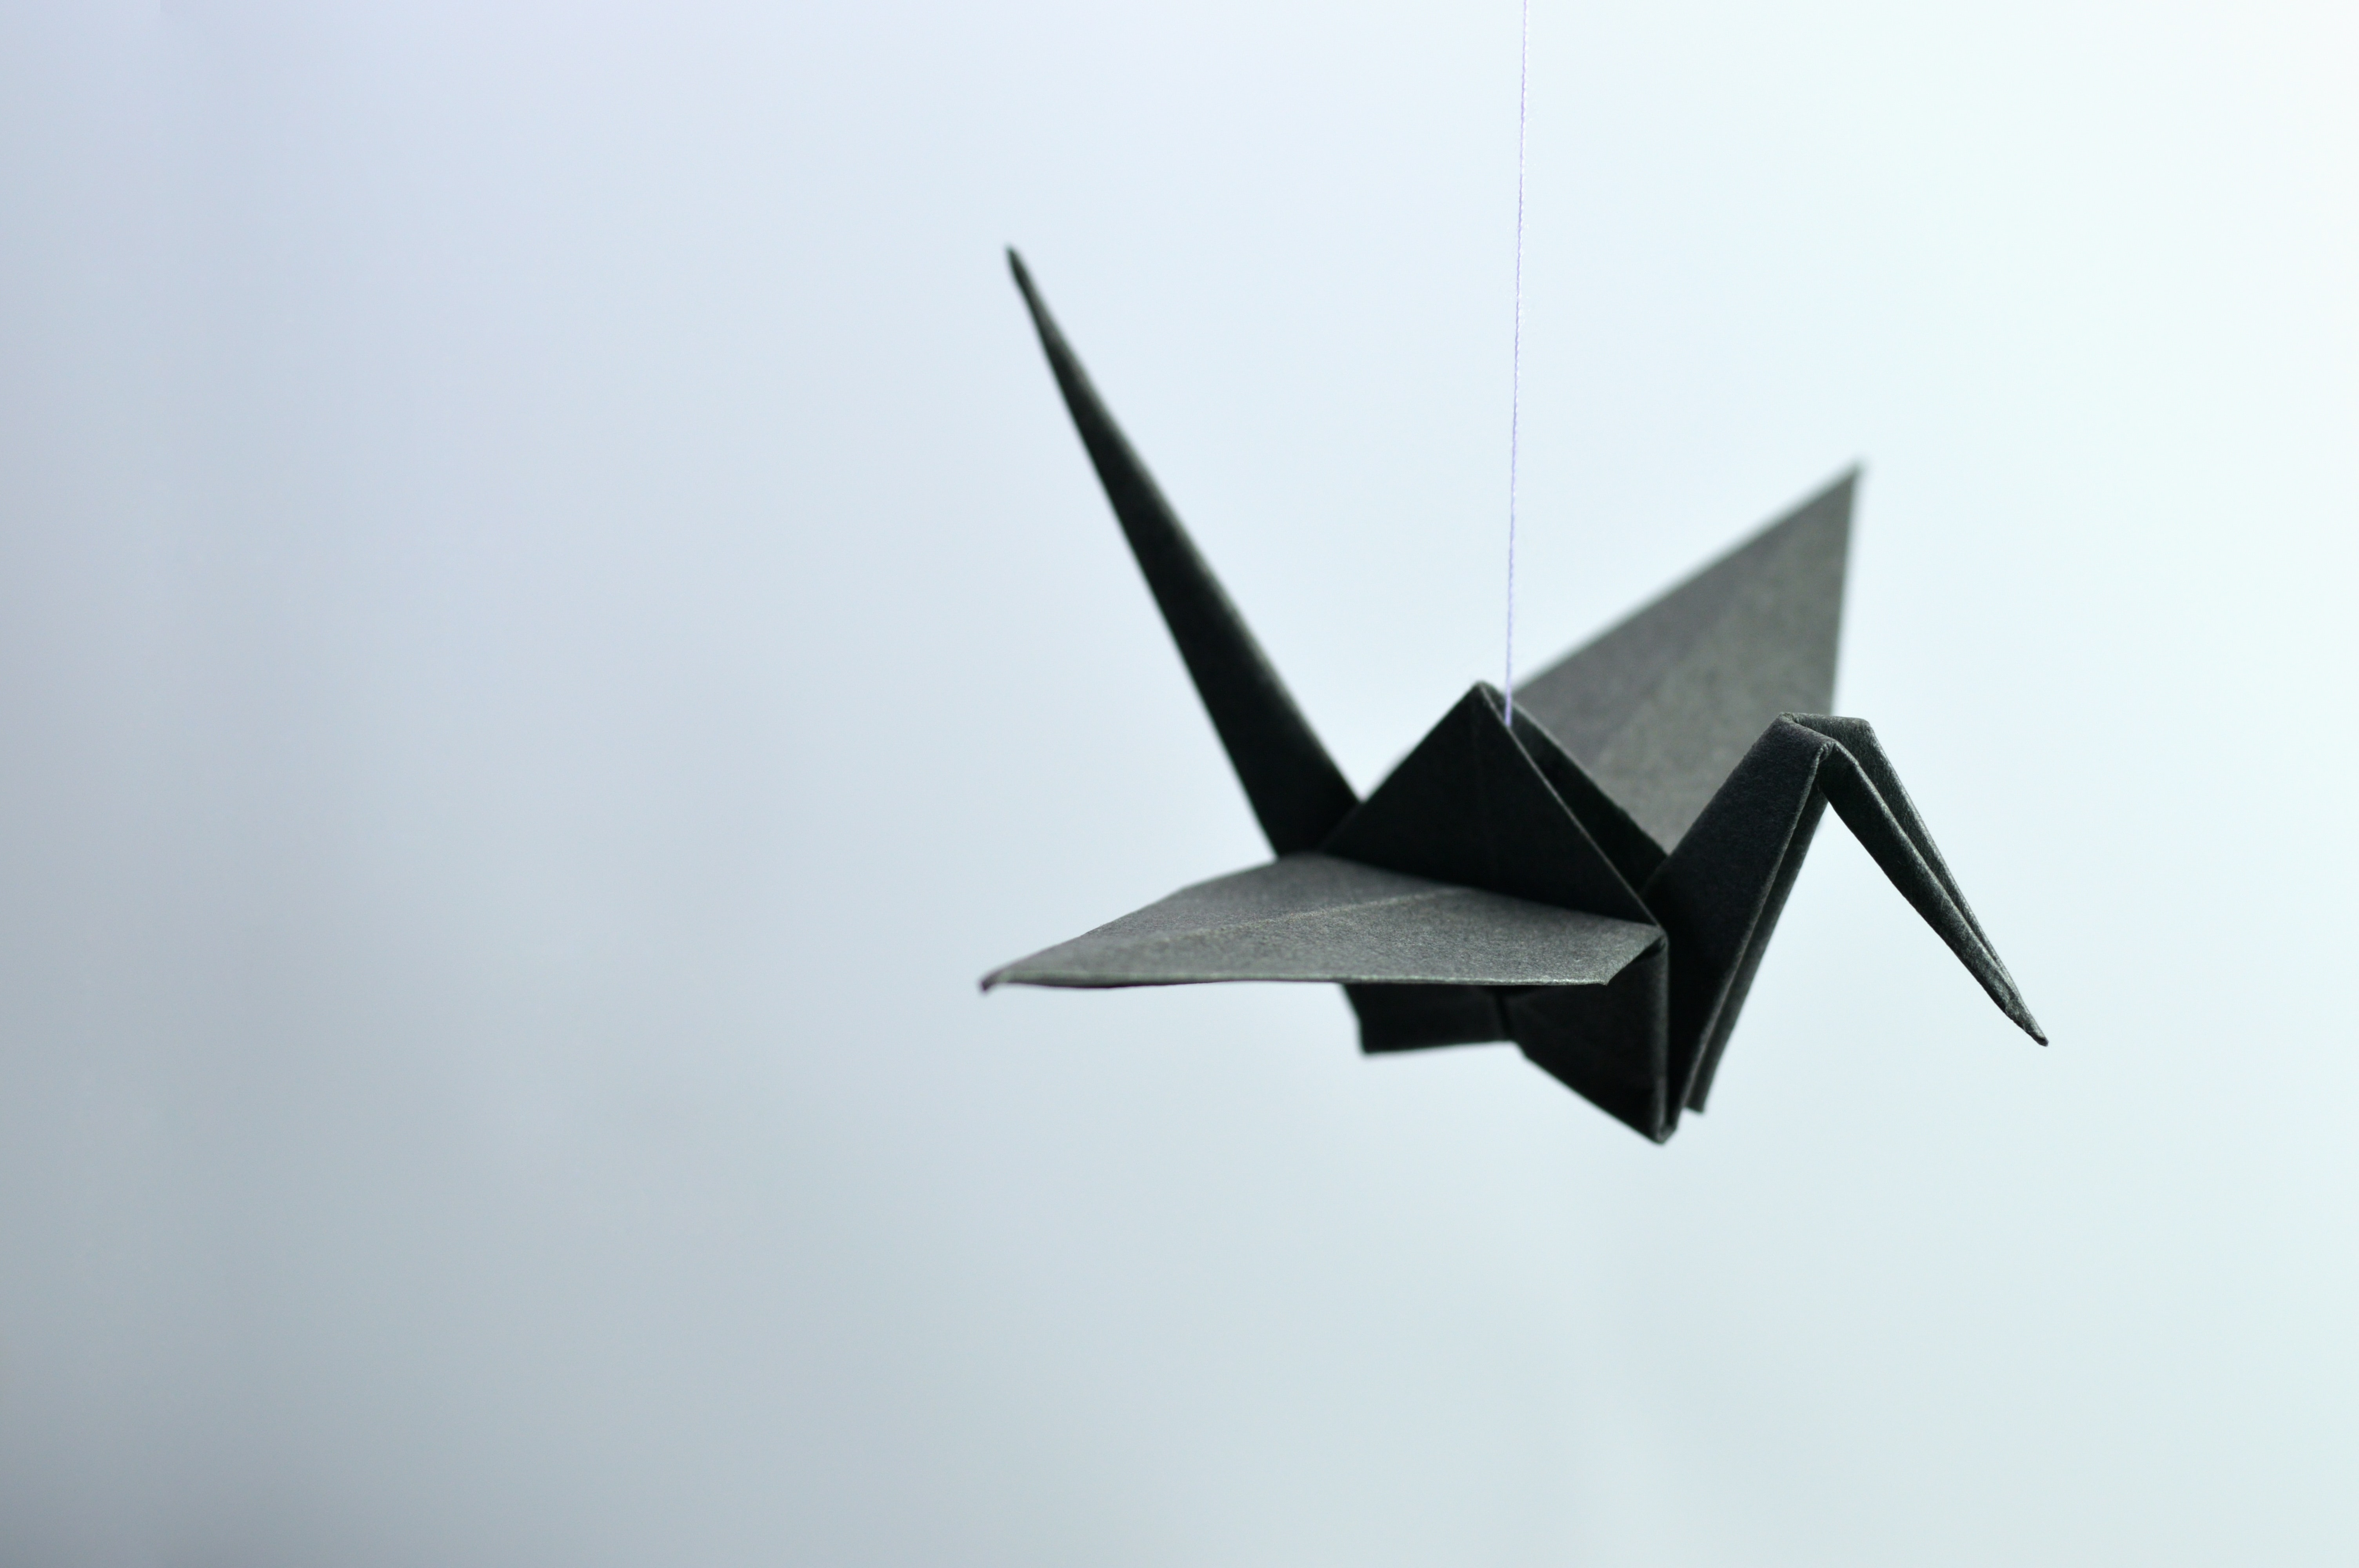 shallow-focus-photography-of-paper-crane-1272838